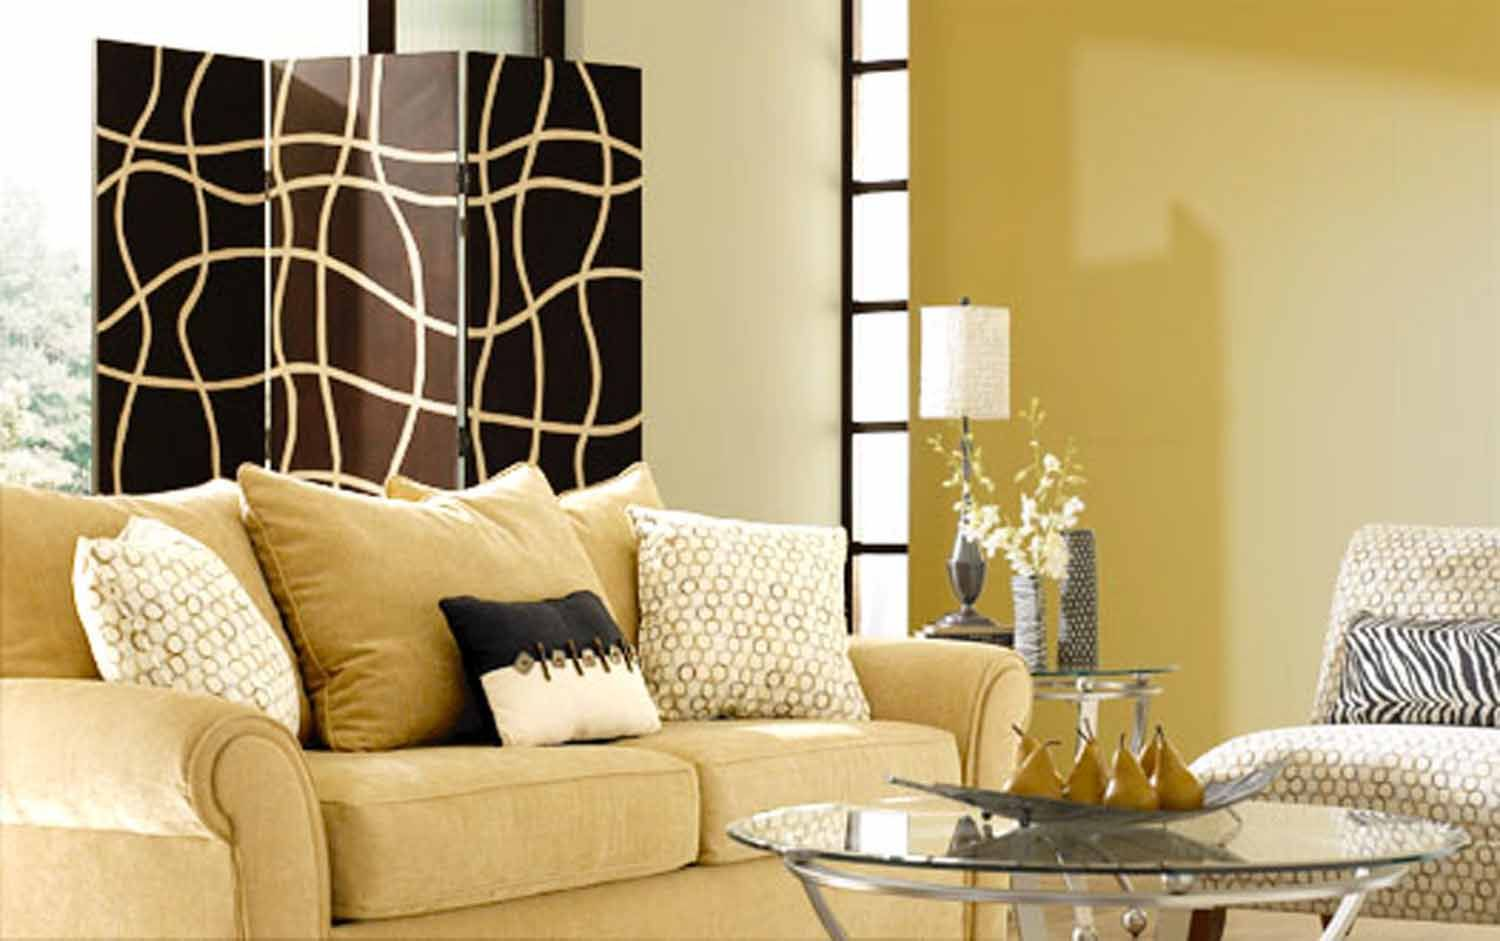 wall paint ideas for living room home interior design interior - Interior Paint Design Ideas For Living Rooms